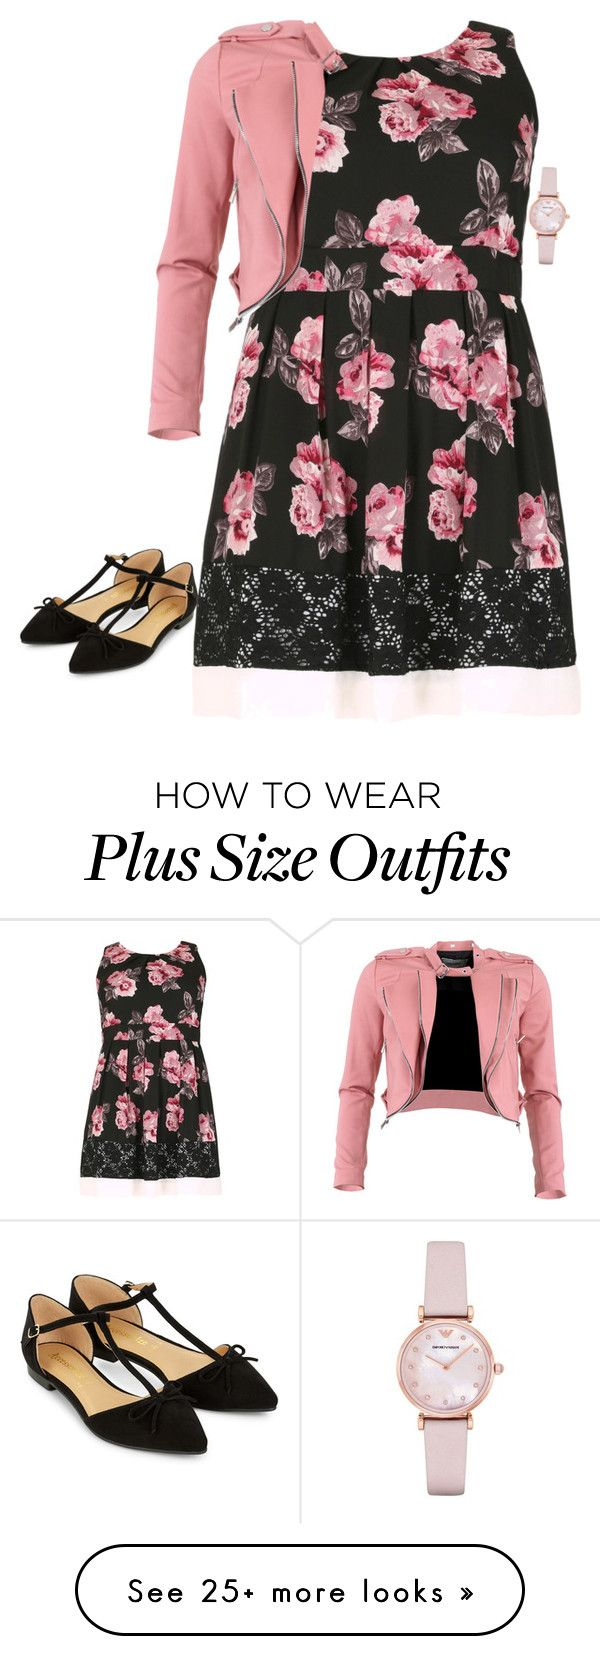 """Professional and classy"" by megvince66 on Polyvore featuring Accessorize, Samya, FRACOMINA and Emporio Armani"